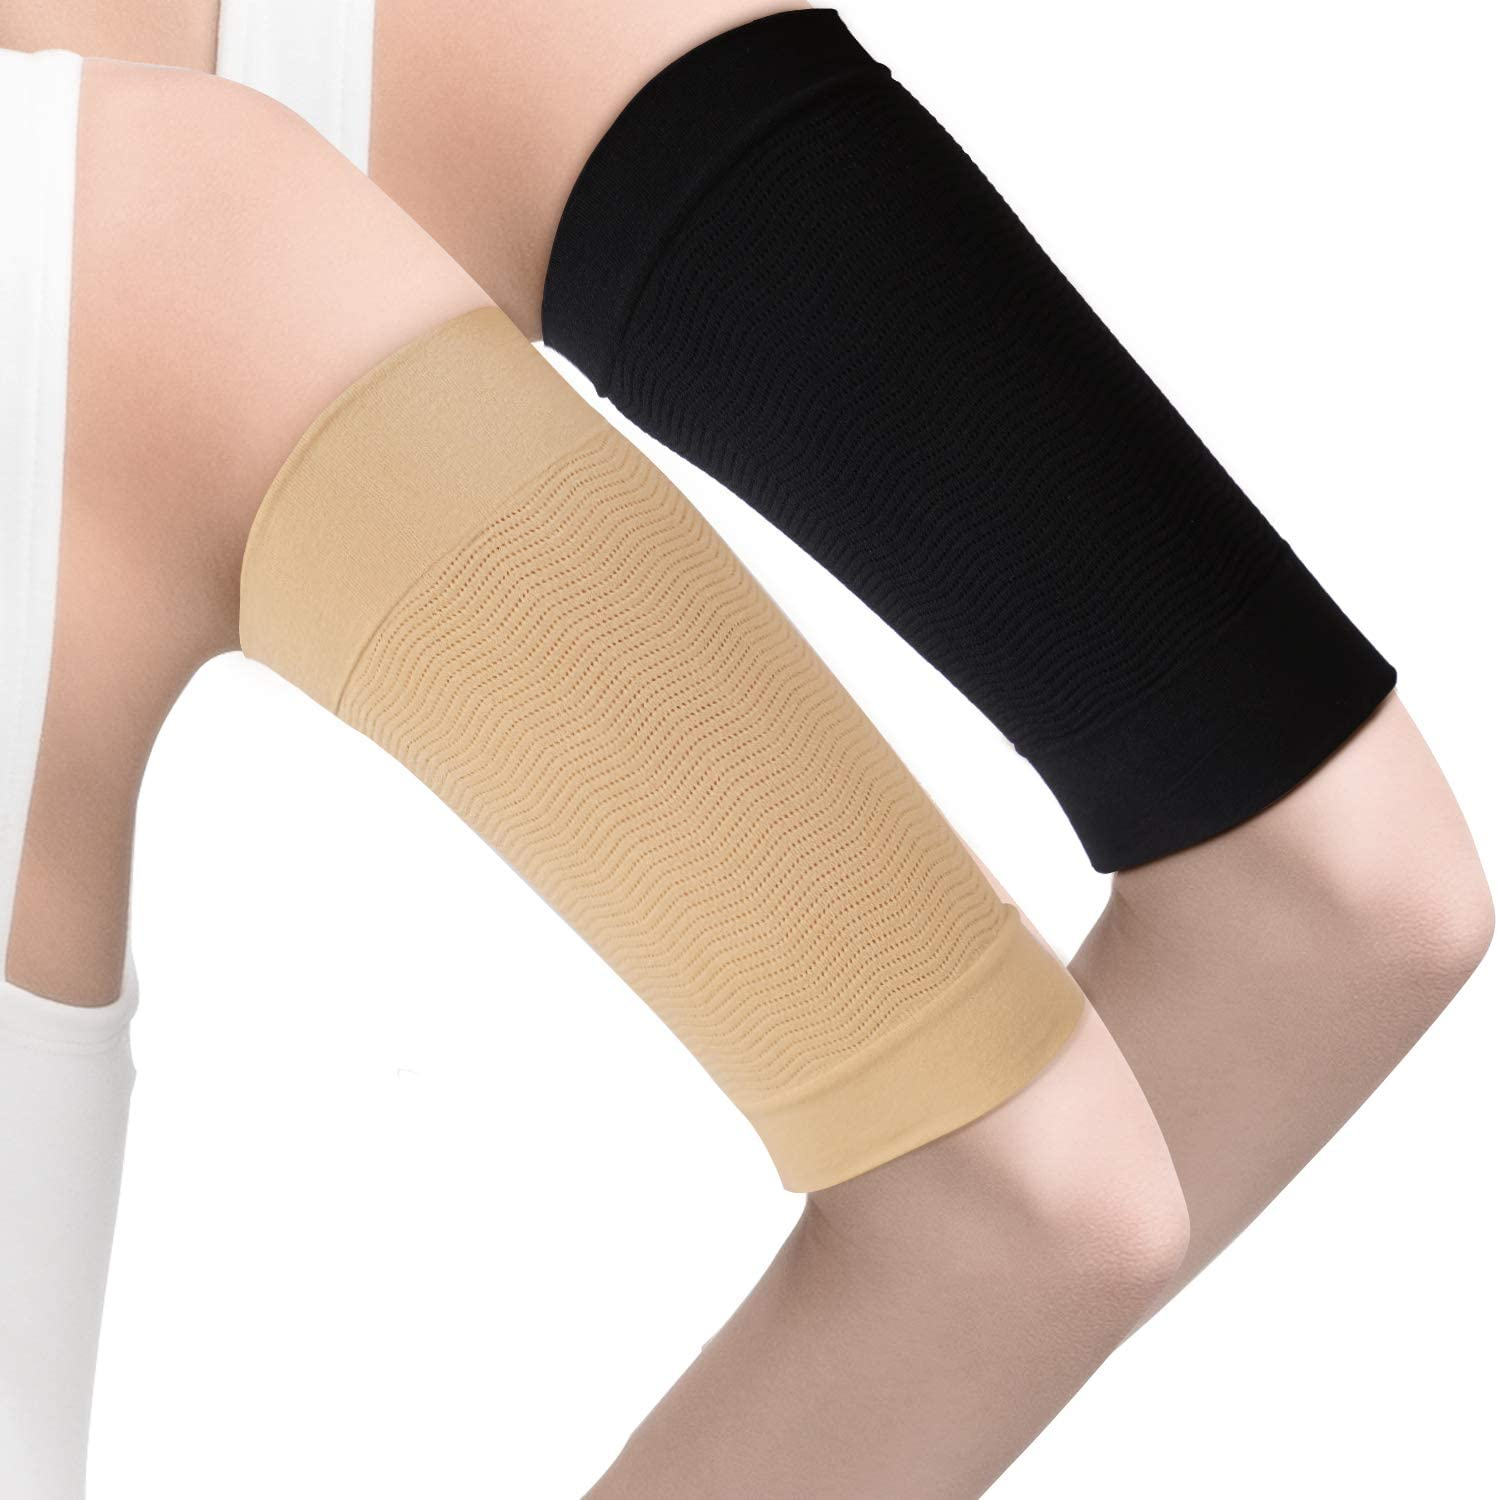 4 Pairs Slimming Arm Sleeves Arm Elastic Compression Arm Shapers Sport Fitness Arm Shapers for Women Girls Weight Loss (Black and Nude Color): Health & Personal Care